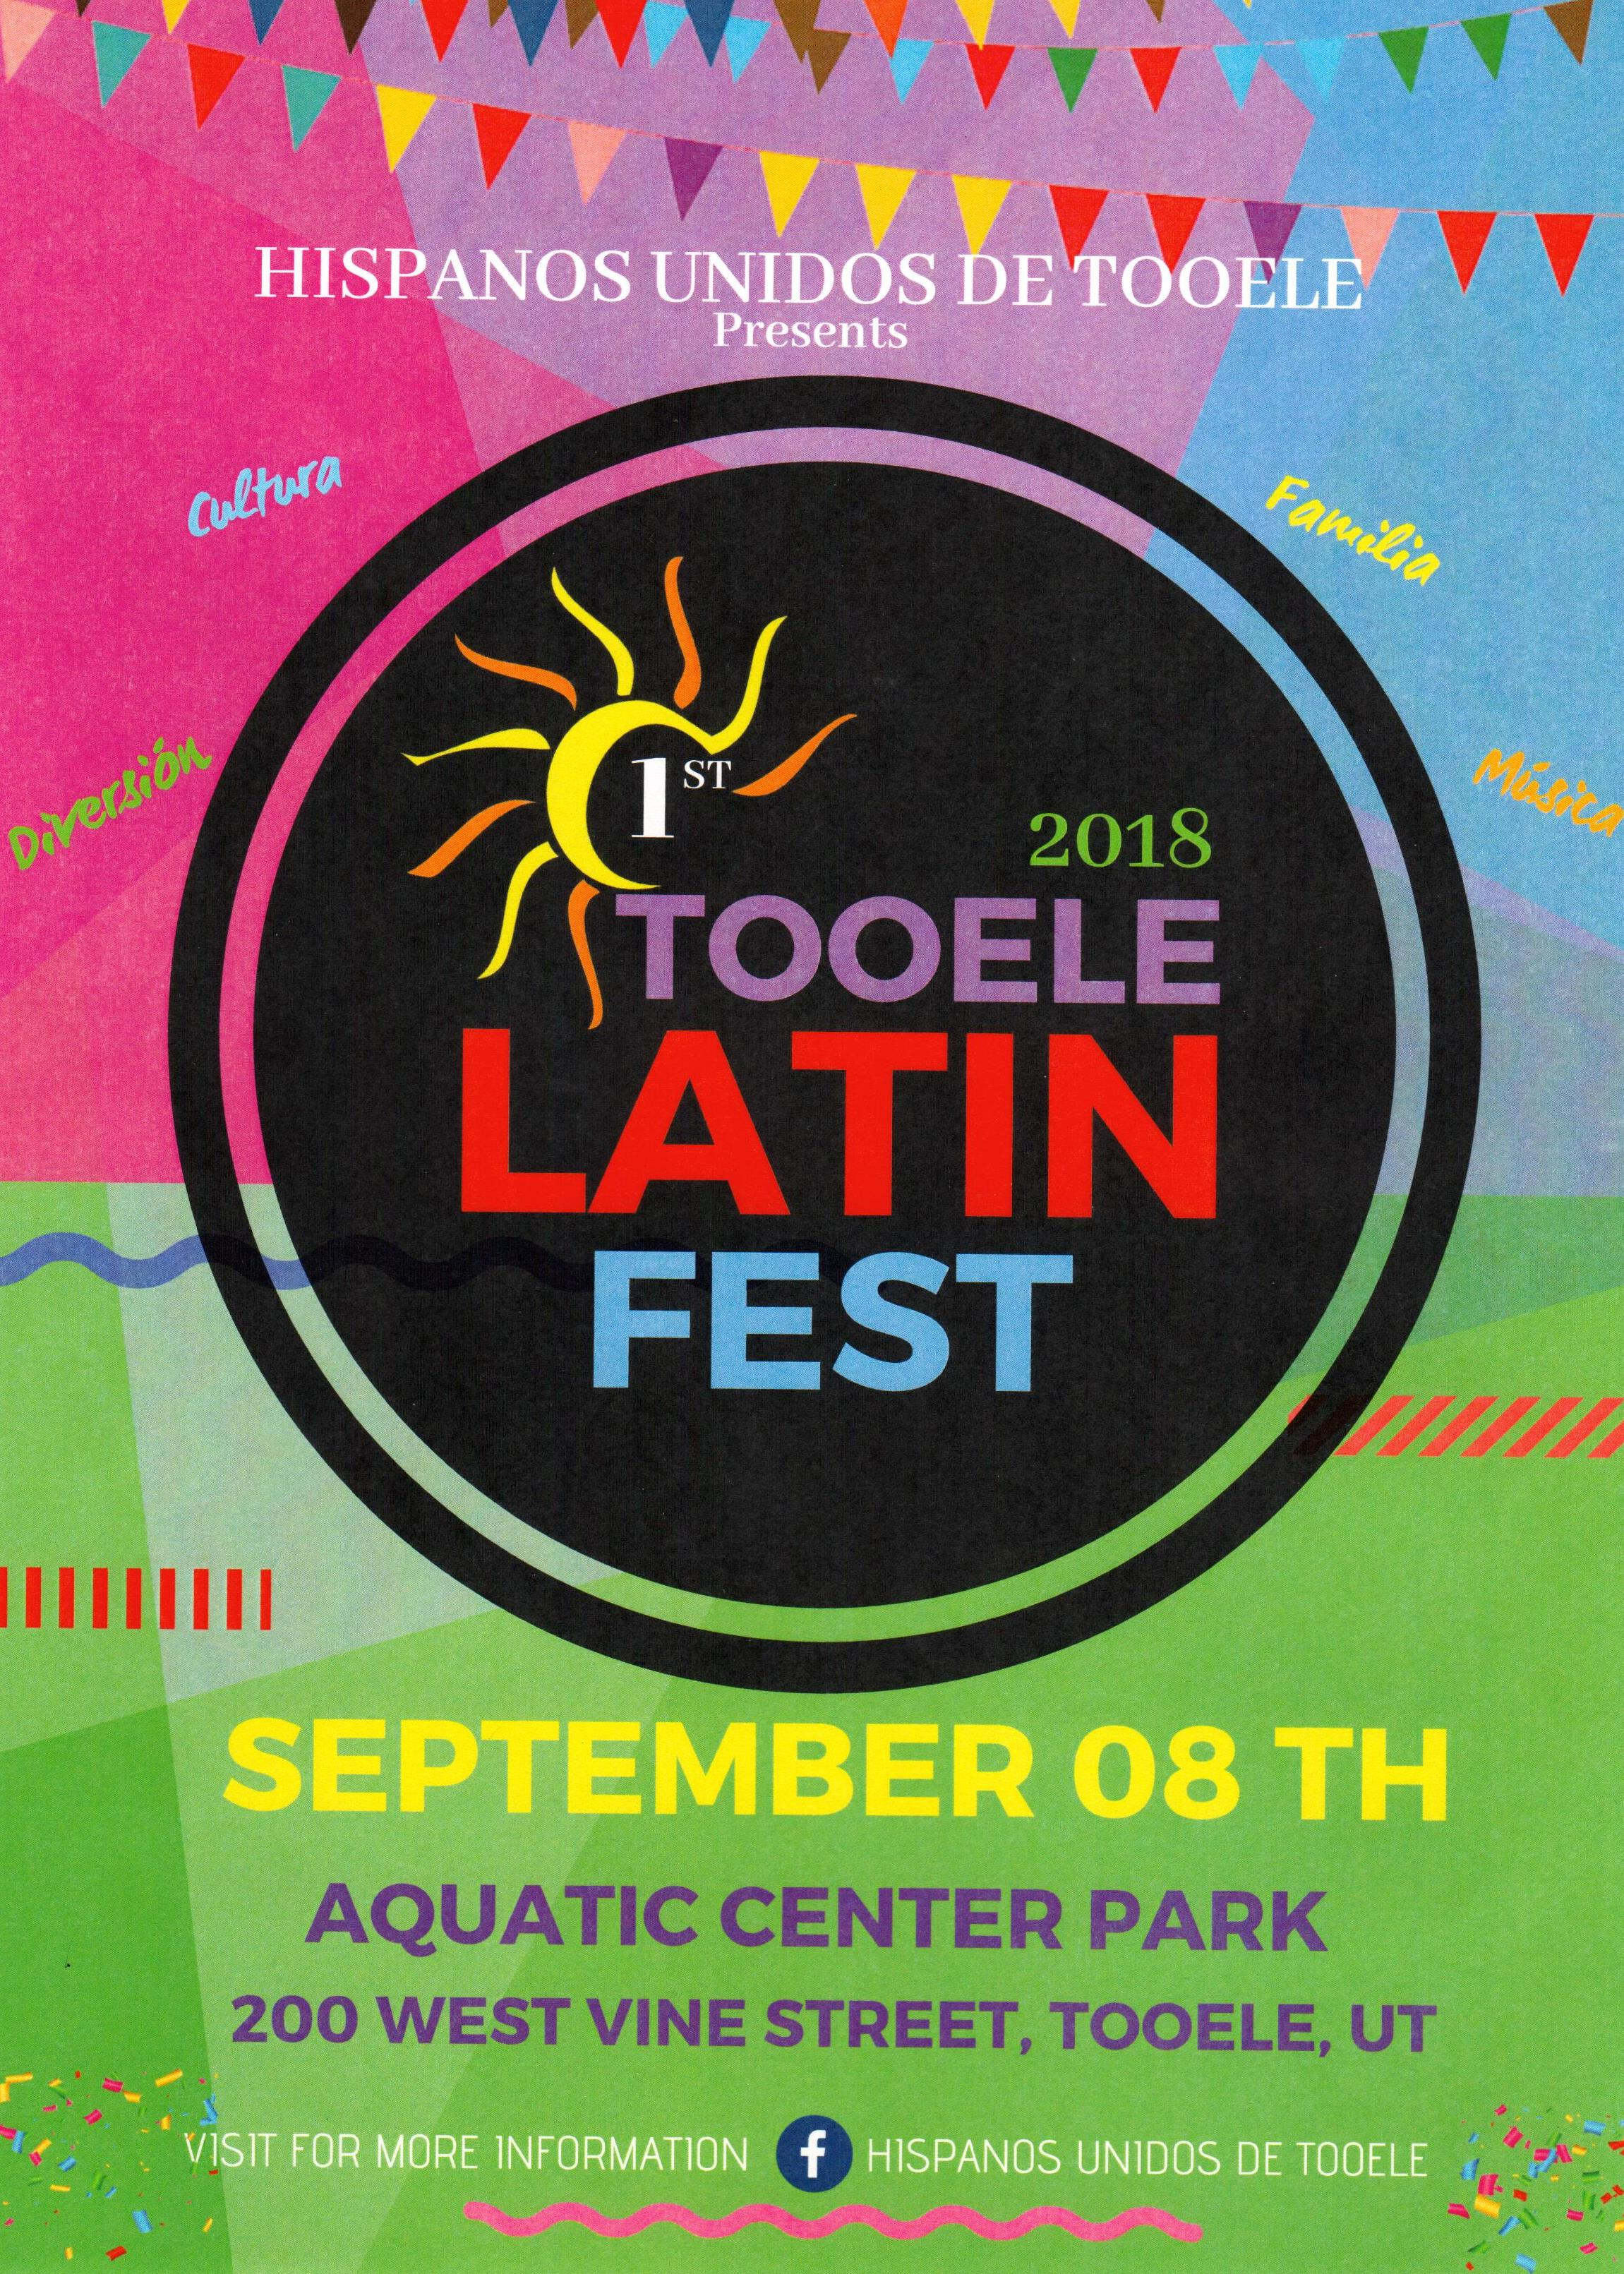 2018 Tooele Latin Fest @ Aquatic Center Park | Tooele | Utah | United States